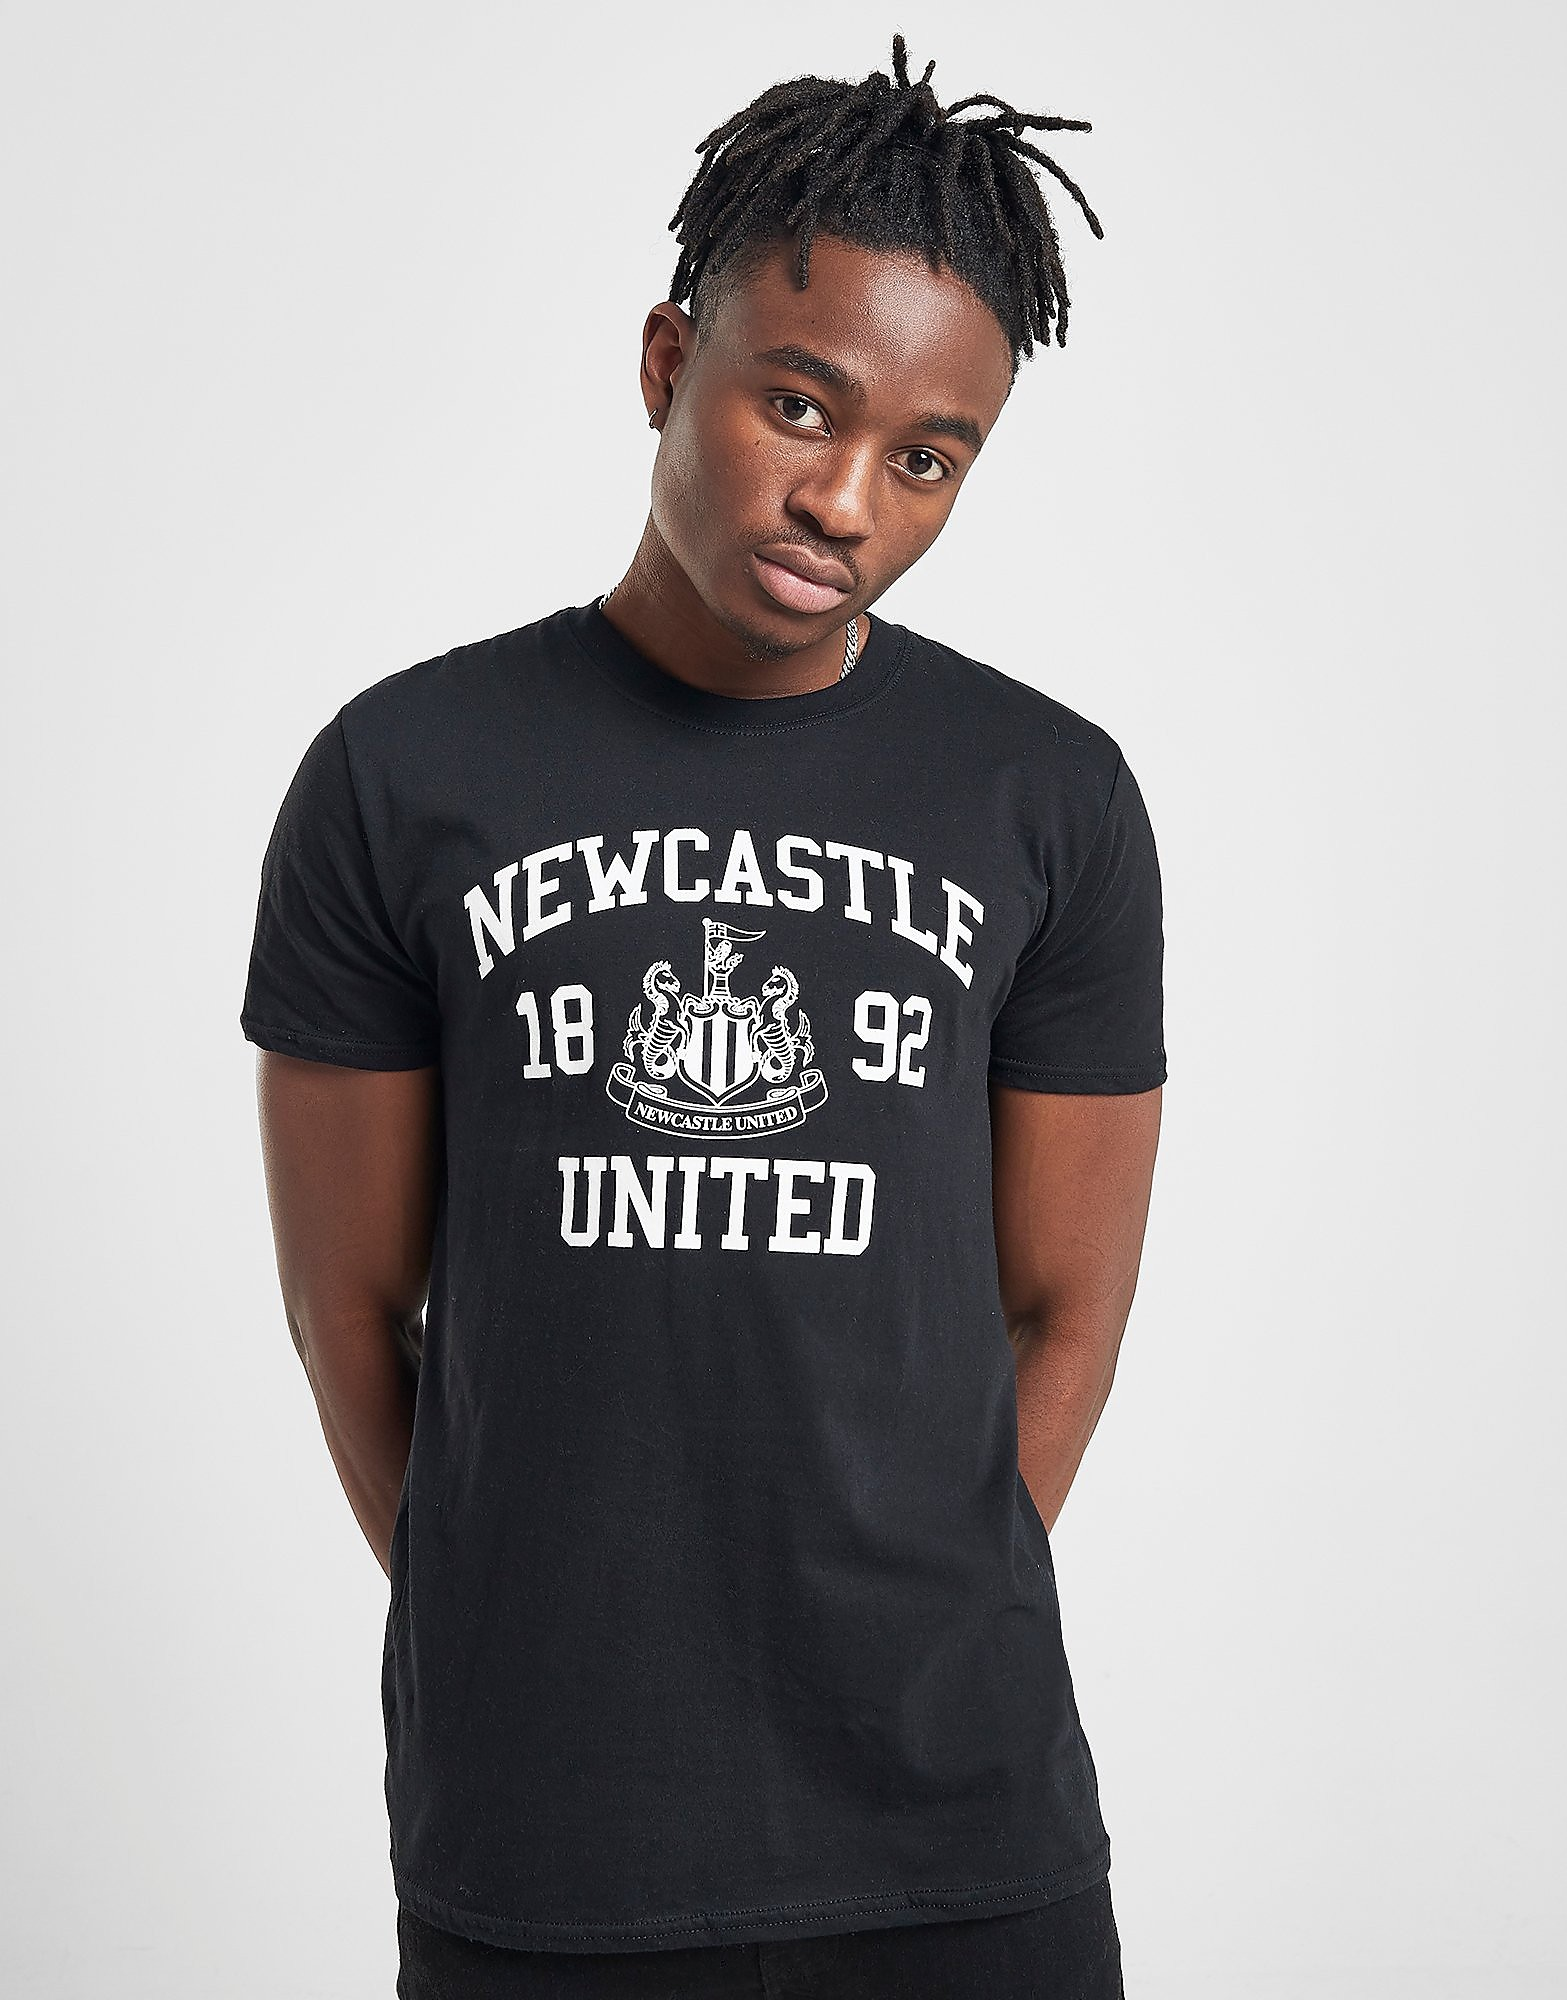 Official Team Newcastle United T-Shirt